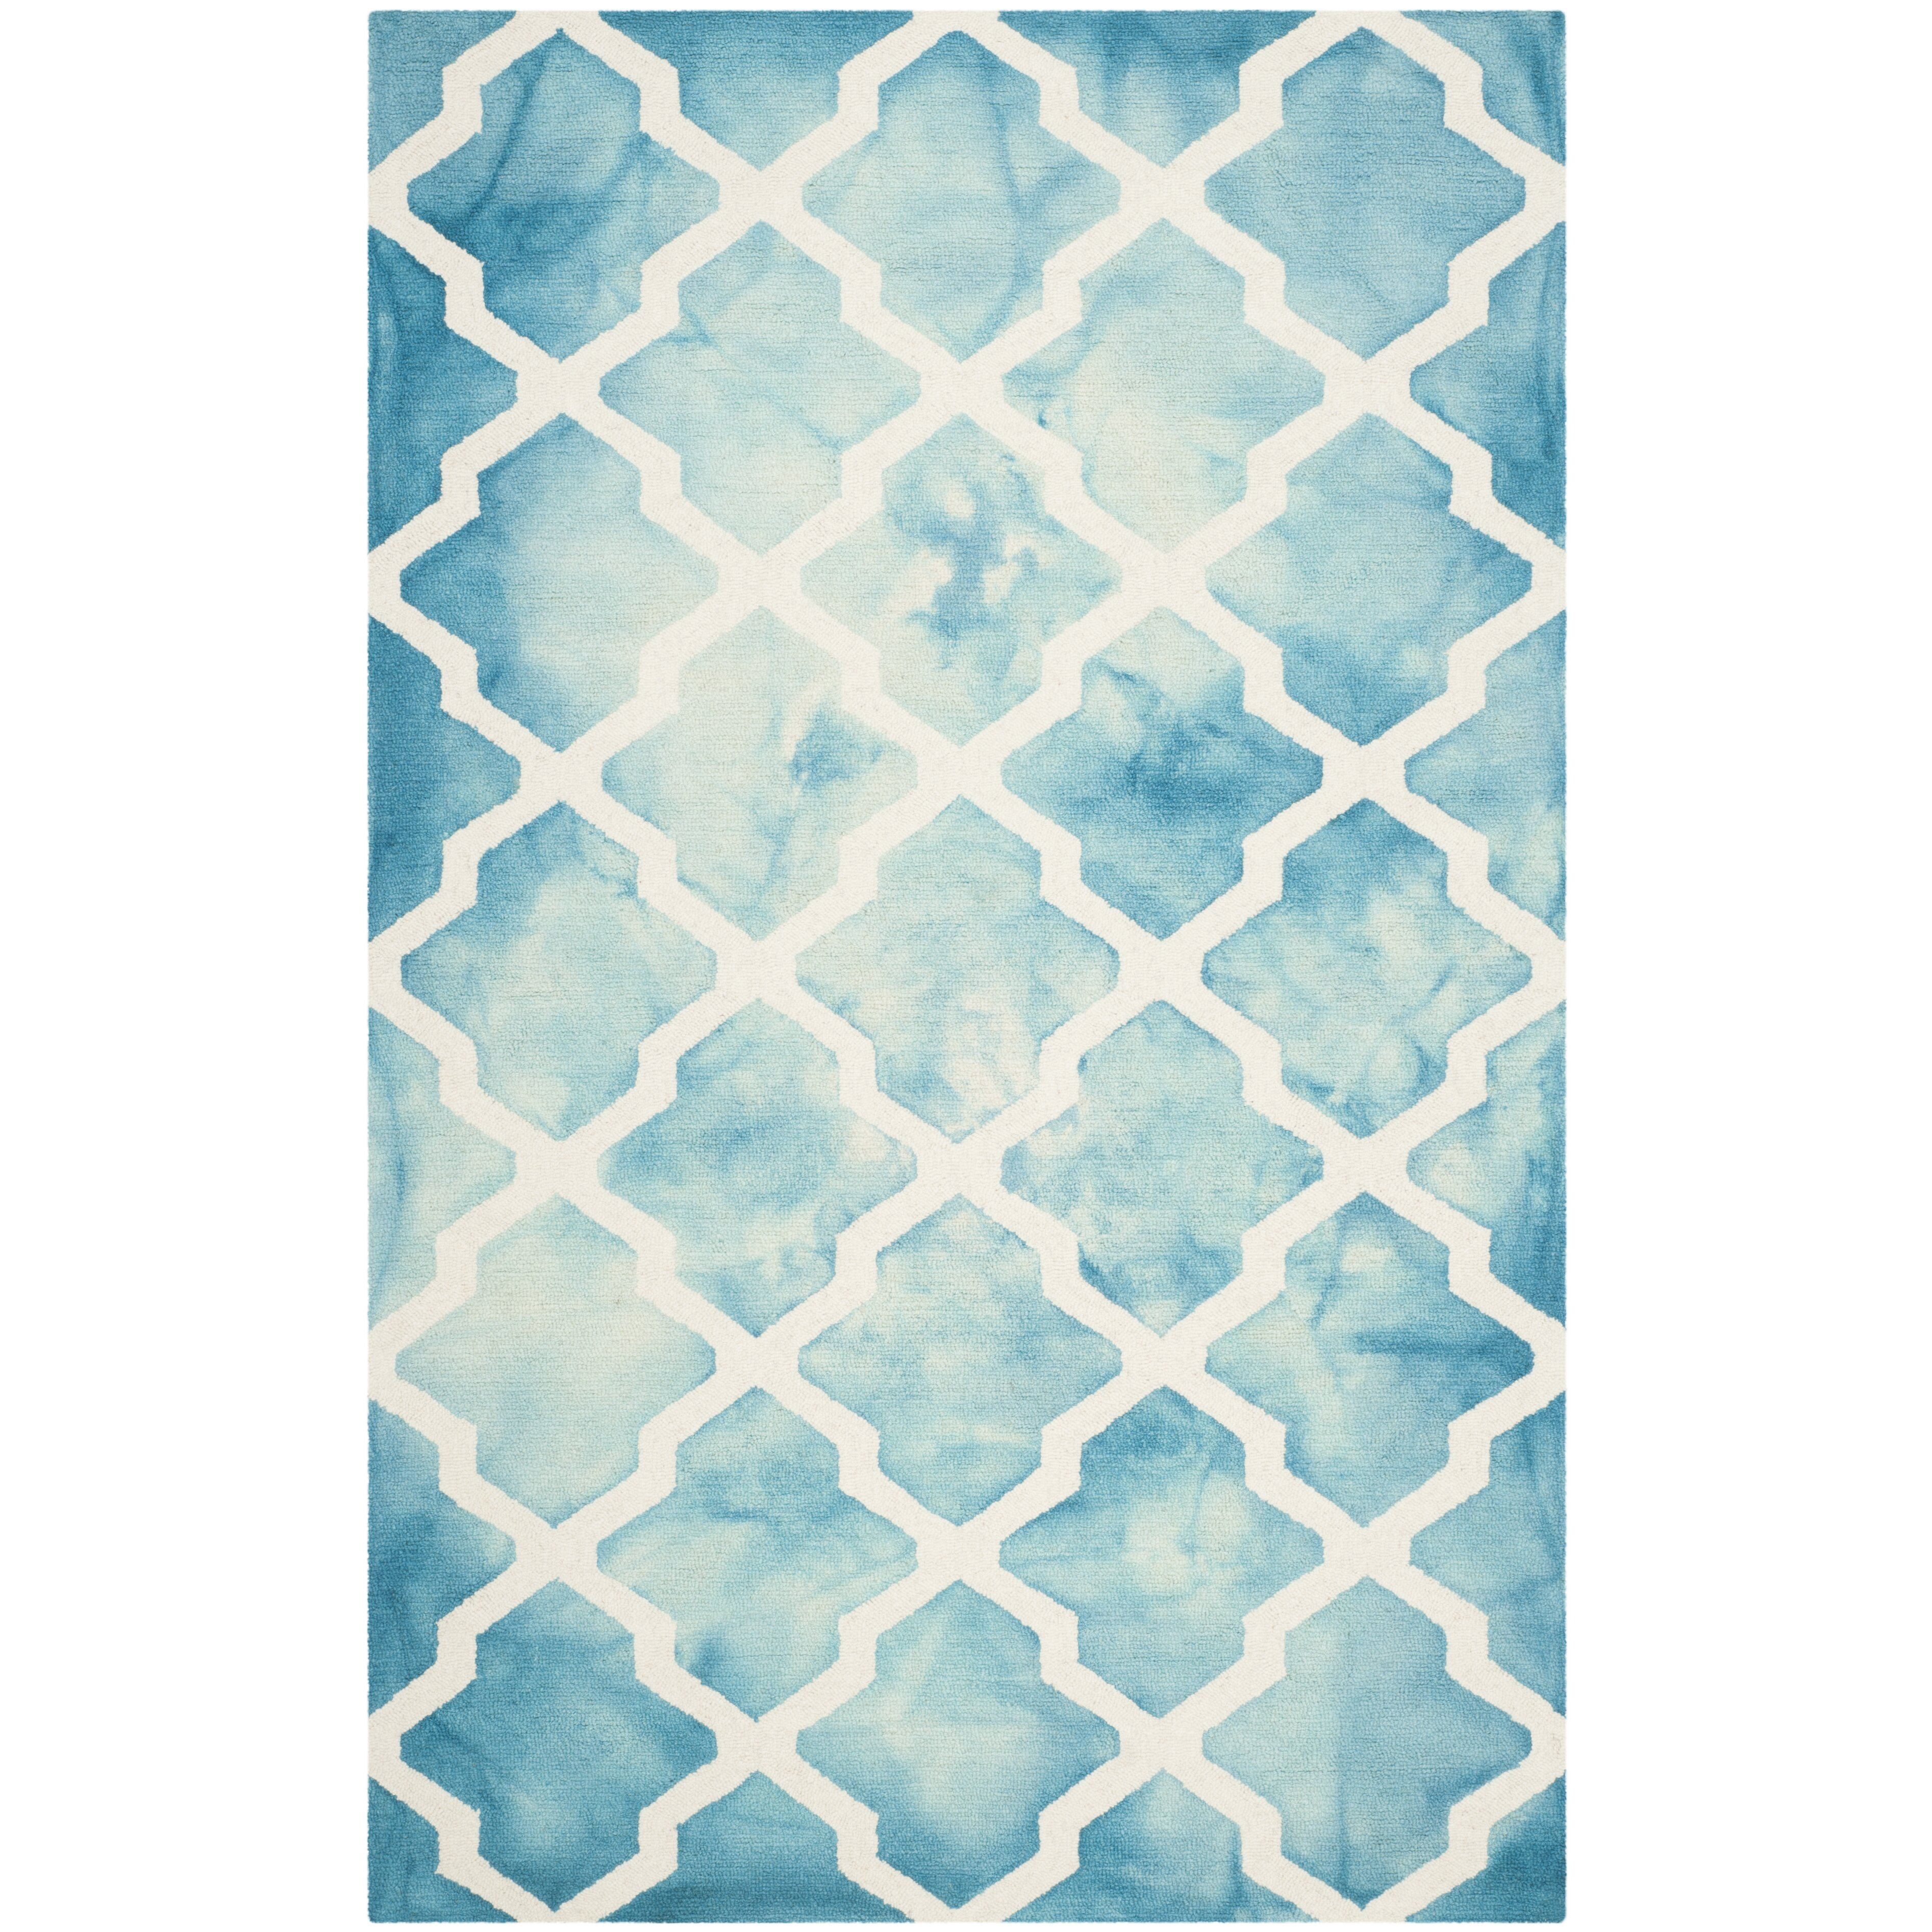 House of hampton hand tufted turquoise ivory area rug for Turquoise area rug